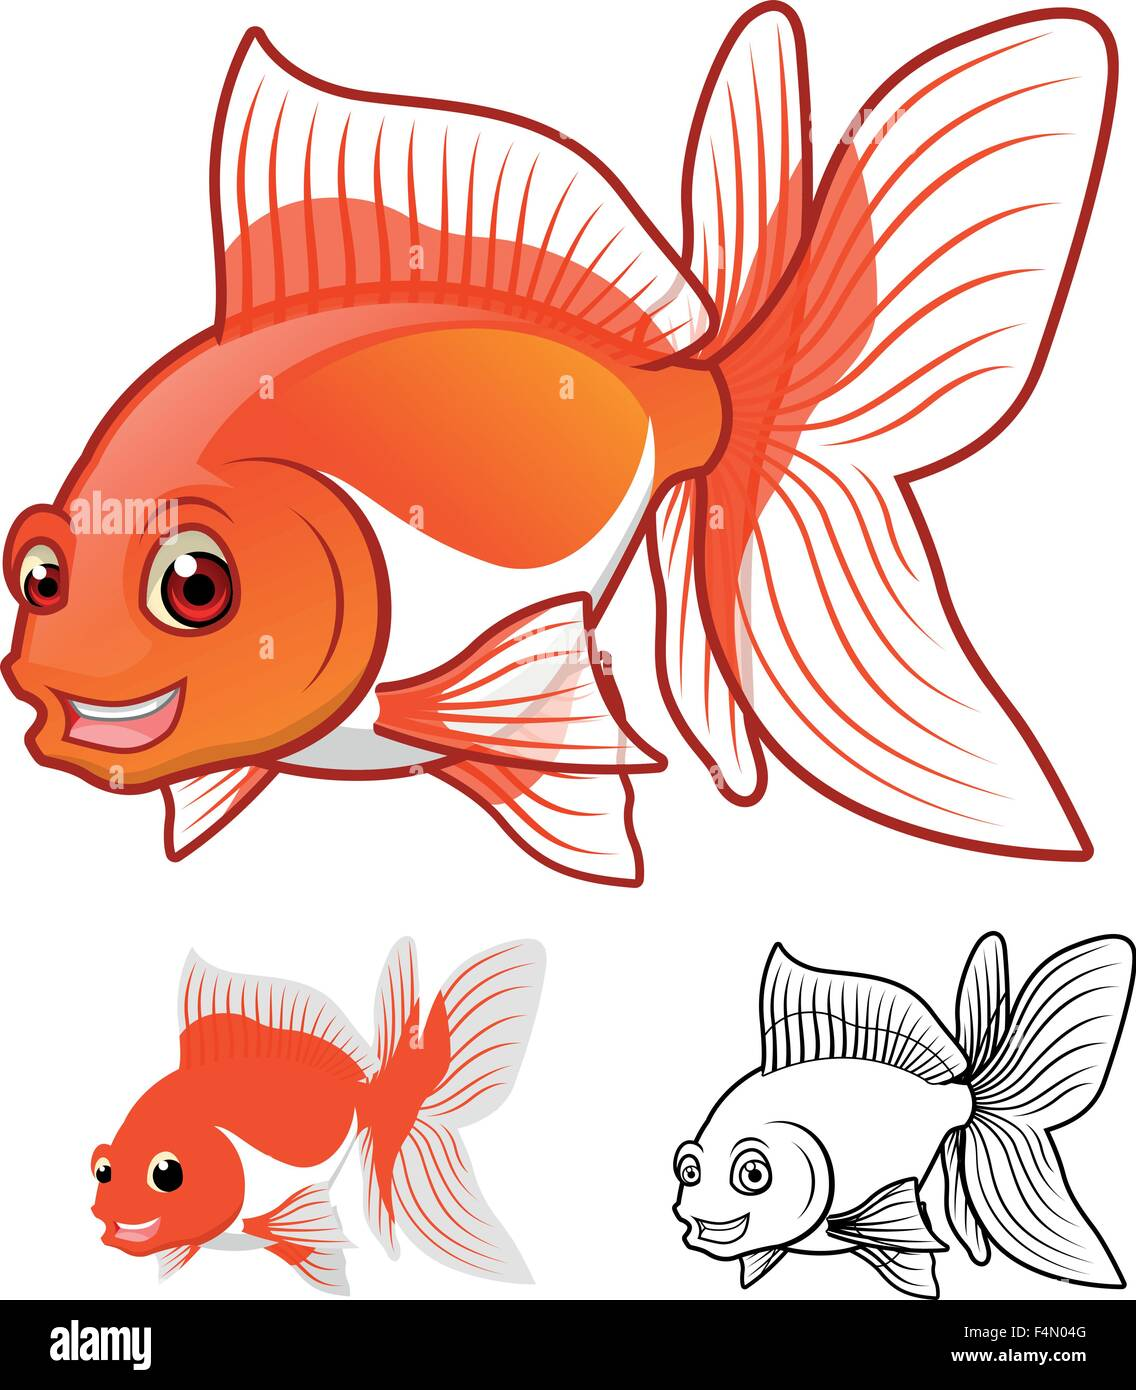 Goldfish Tail Stock Vector Images - Alamy